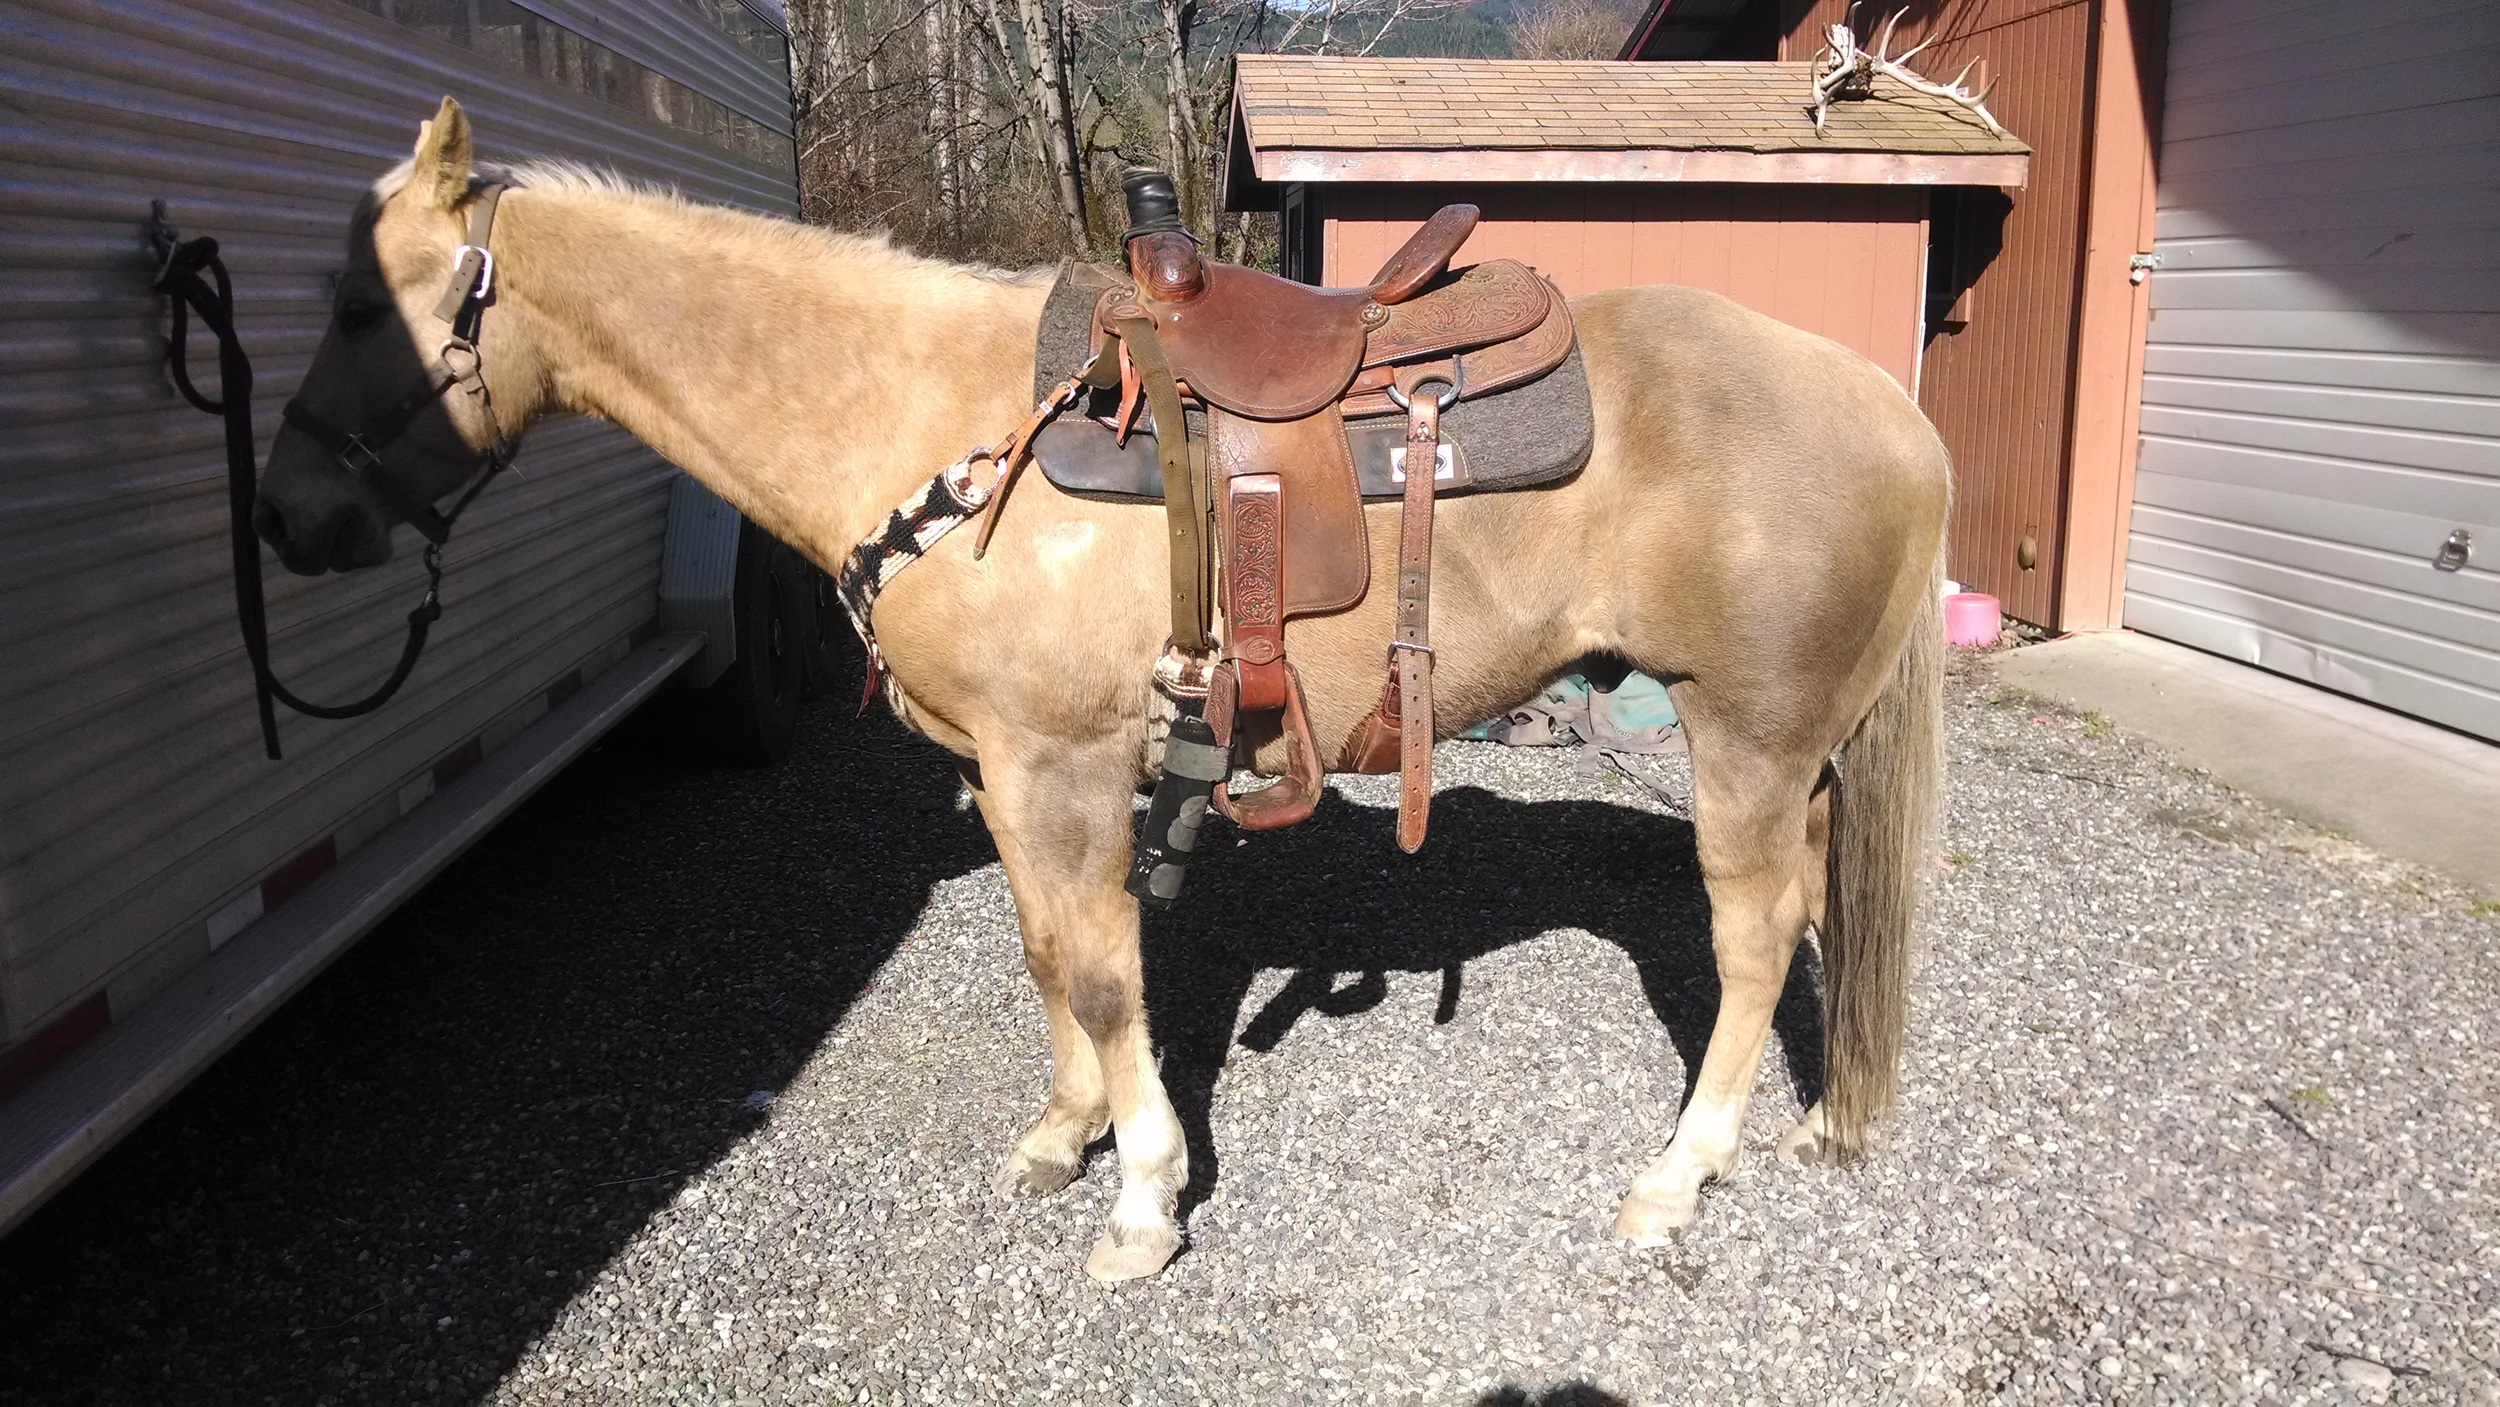 My little heel horse...Teddy. With he new cinch and breast collar shown in cinch section